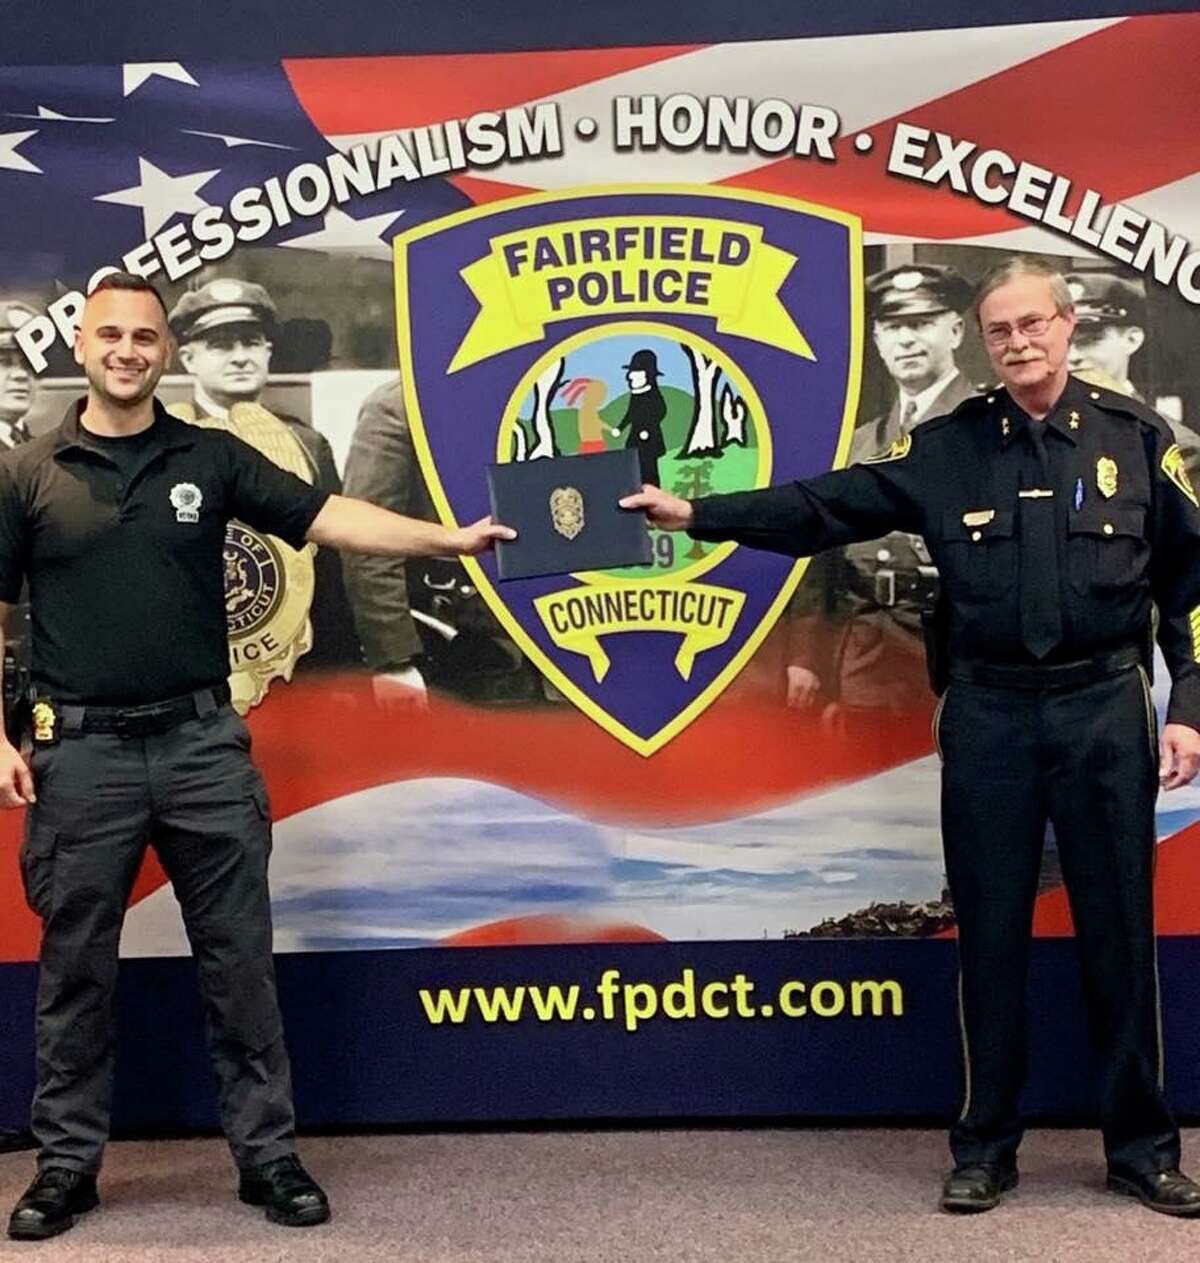 Chief Christopher Lyddy presented Detective Michael Clark with an award for distinguished service on Tuesday, April 21., 2020. Due to social distancing restriction, the chief and detective are standing a safe distance apart.